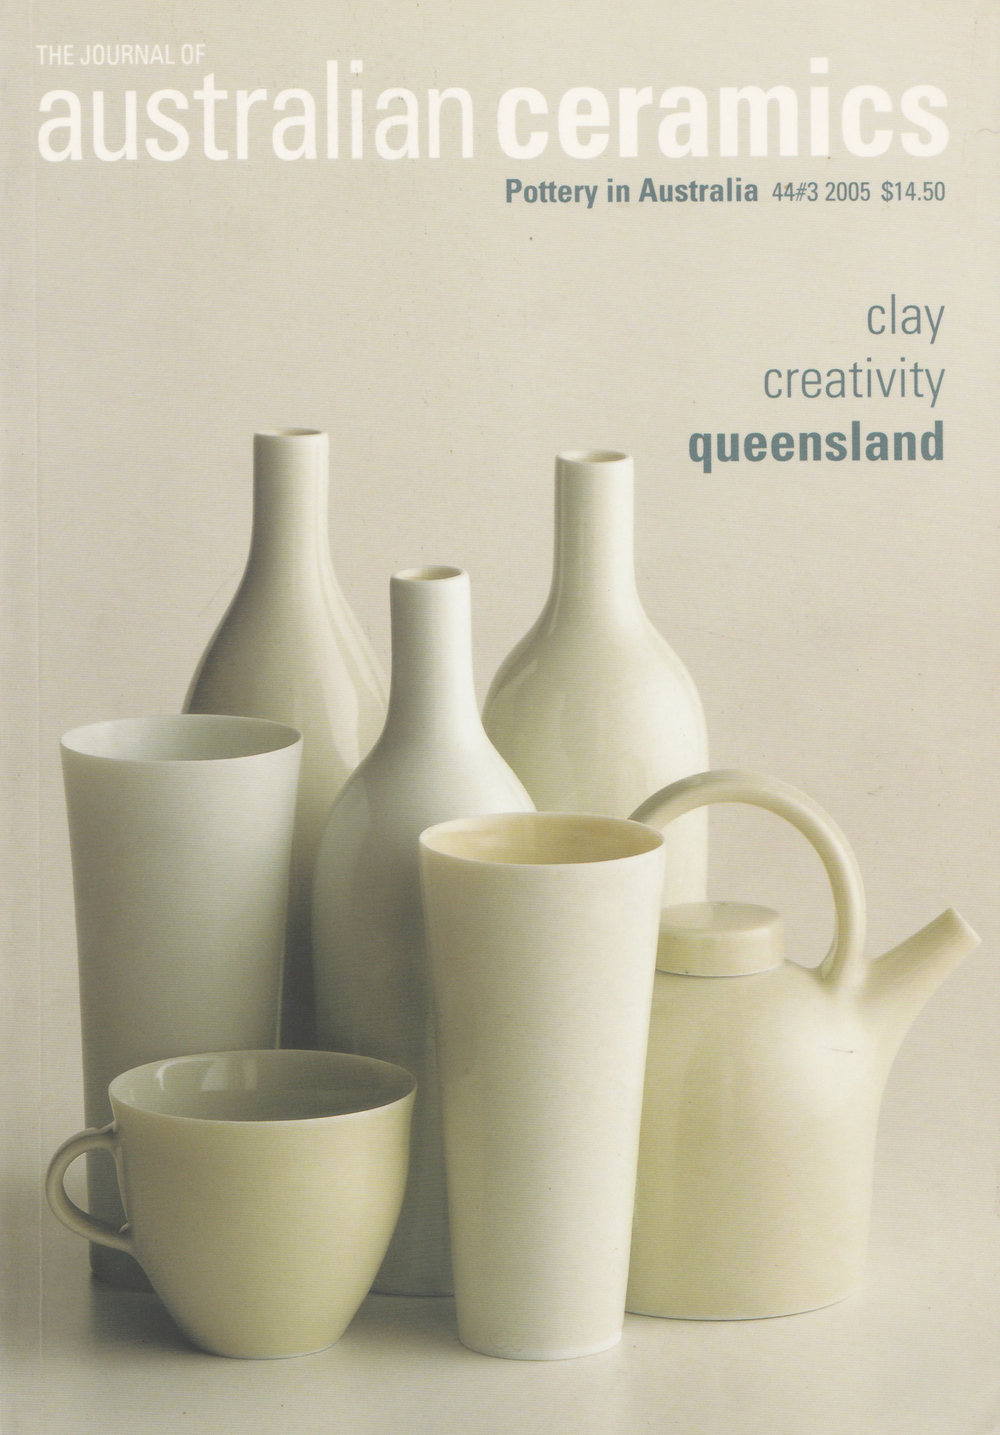 Guest Editor, Journal of Australian Ceramics 44/3 2005